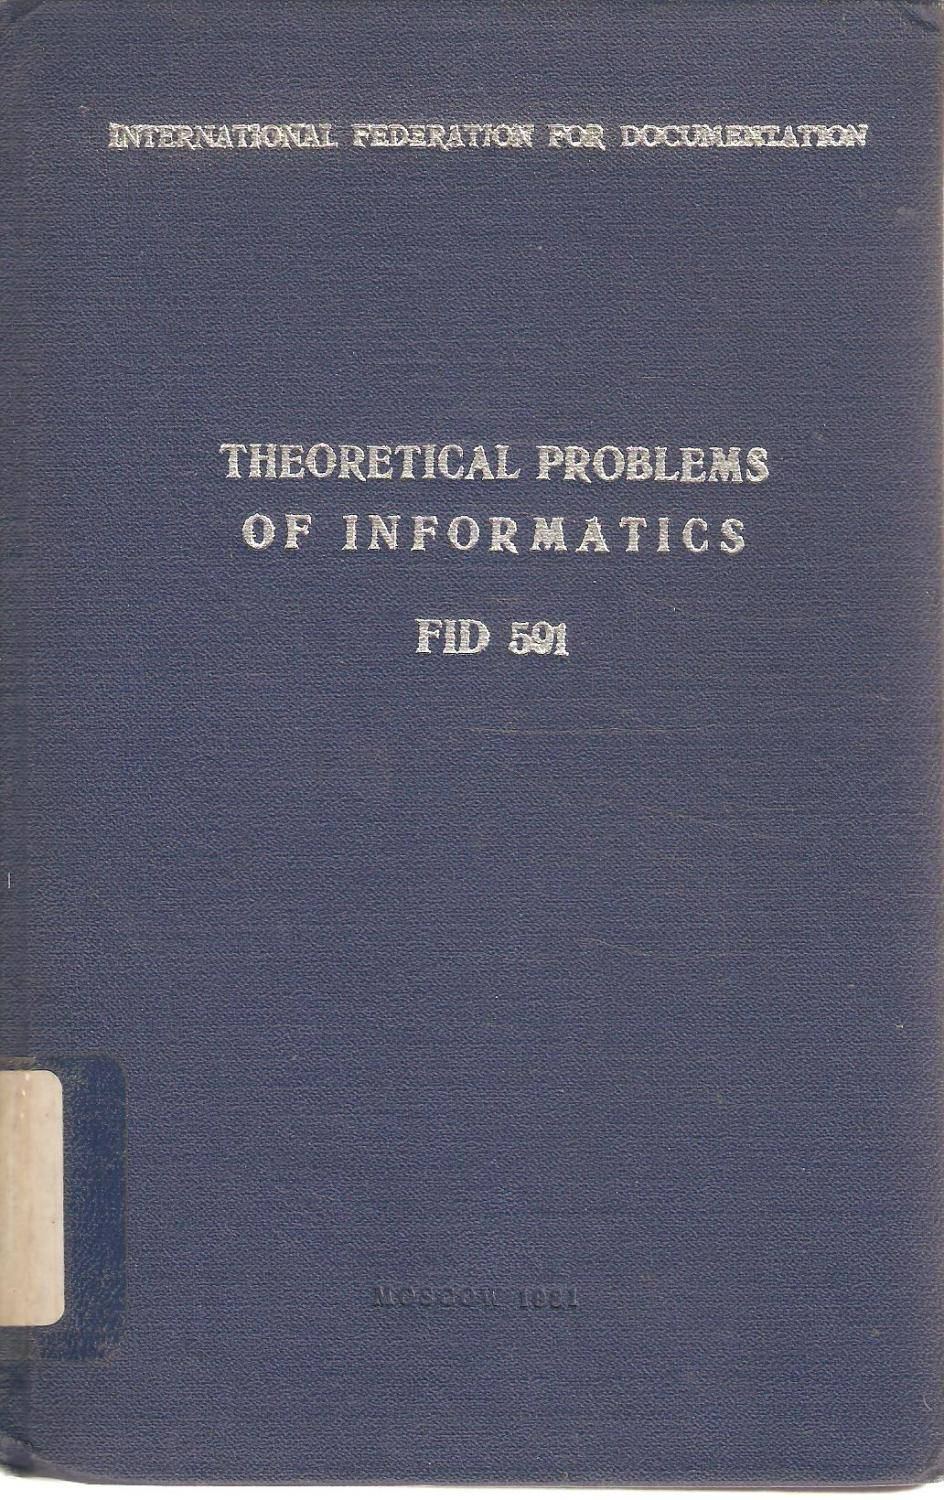 Theoretical Problems of Informatics - Criteria of the quality of information systems and processes (collection of papers) FID 591   [Very Good] [Hard